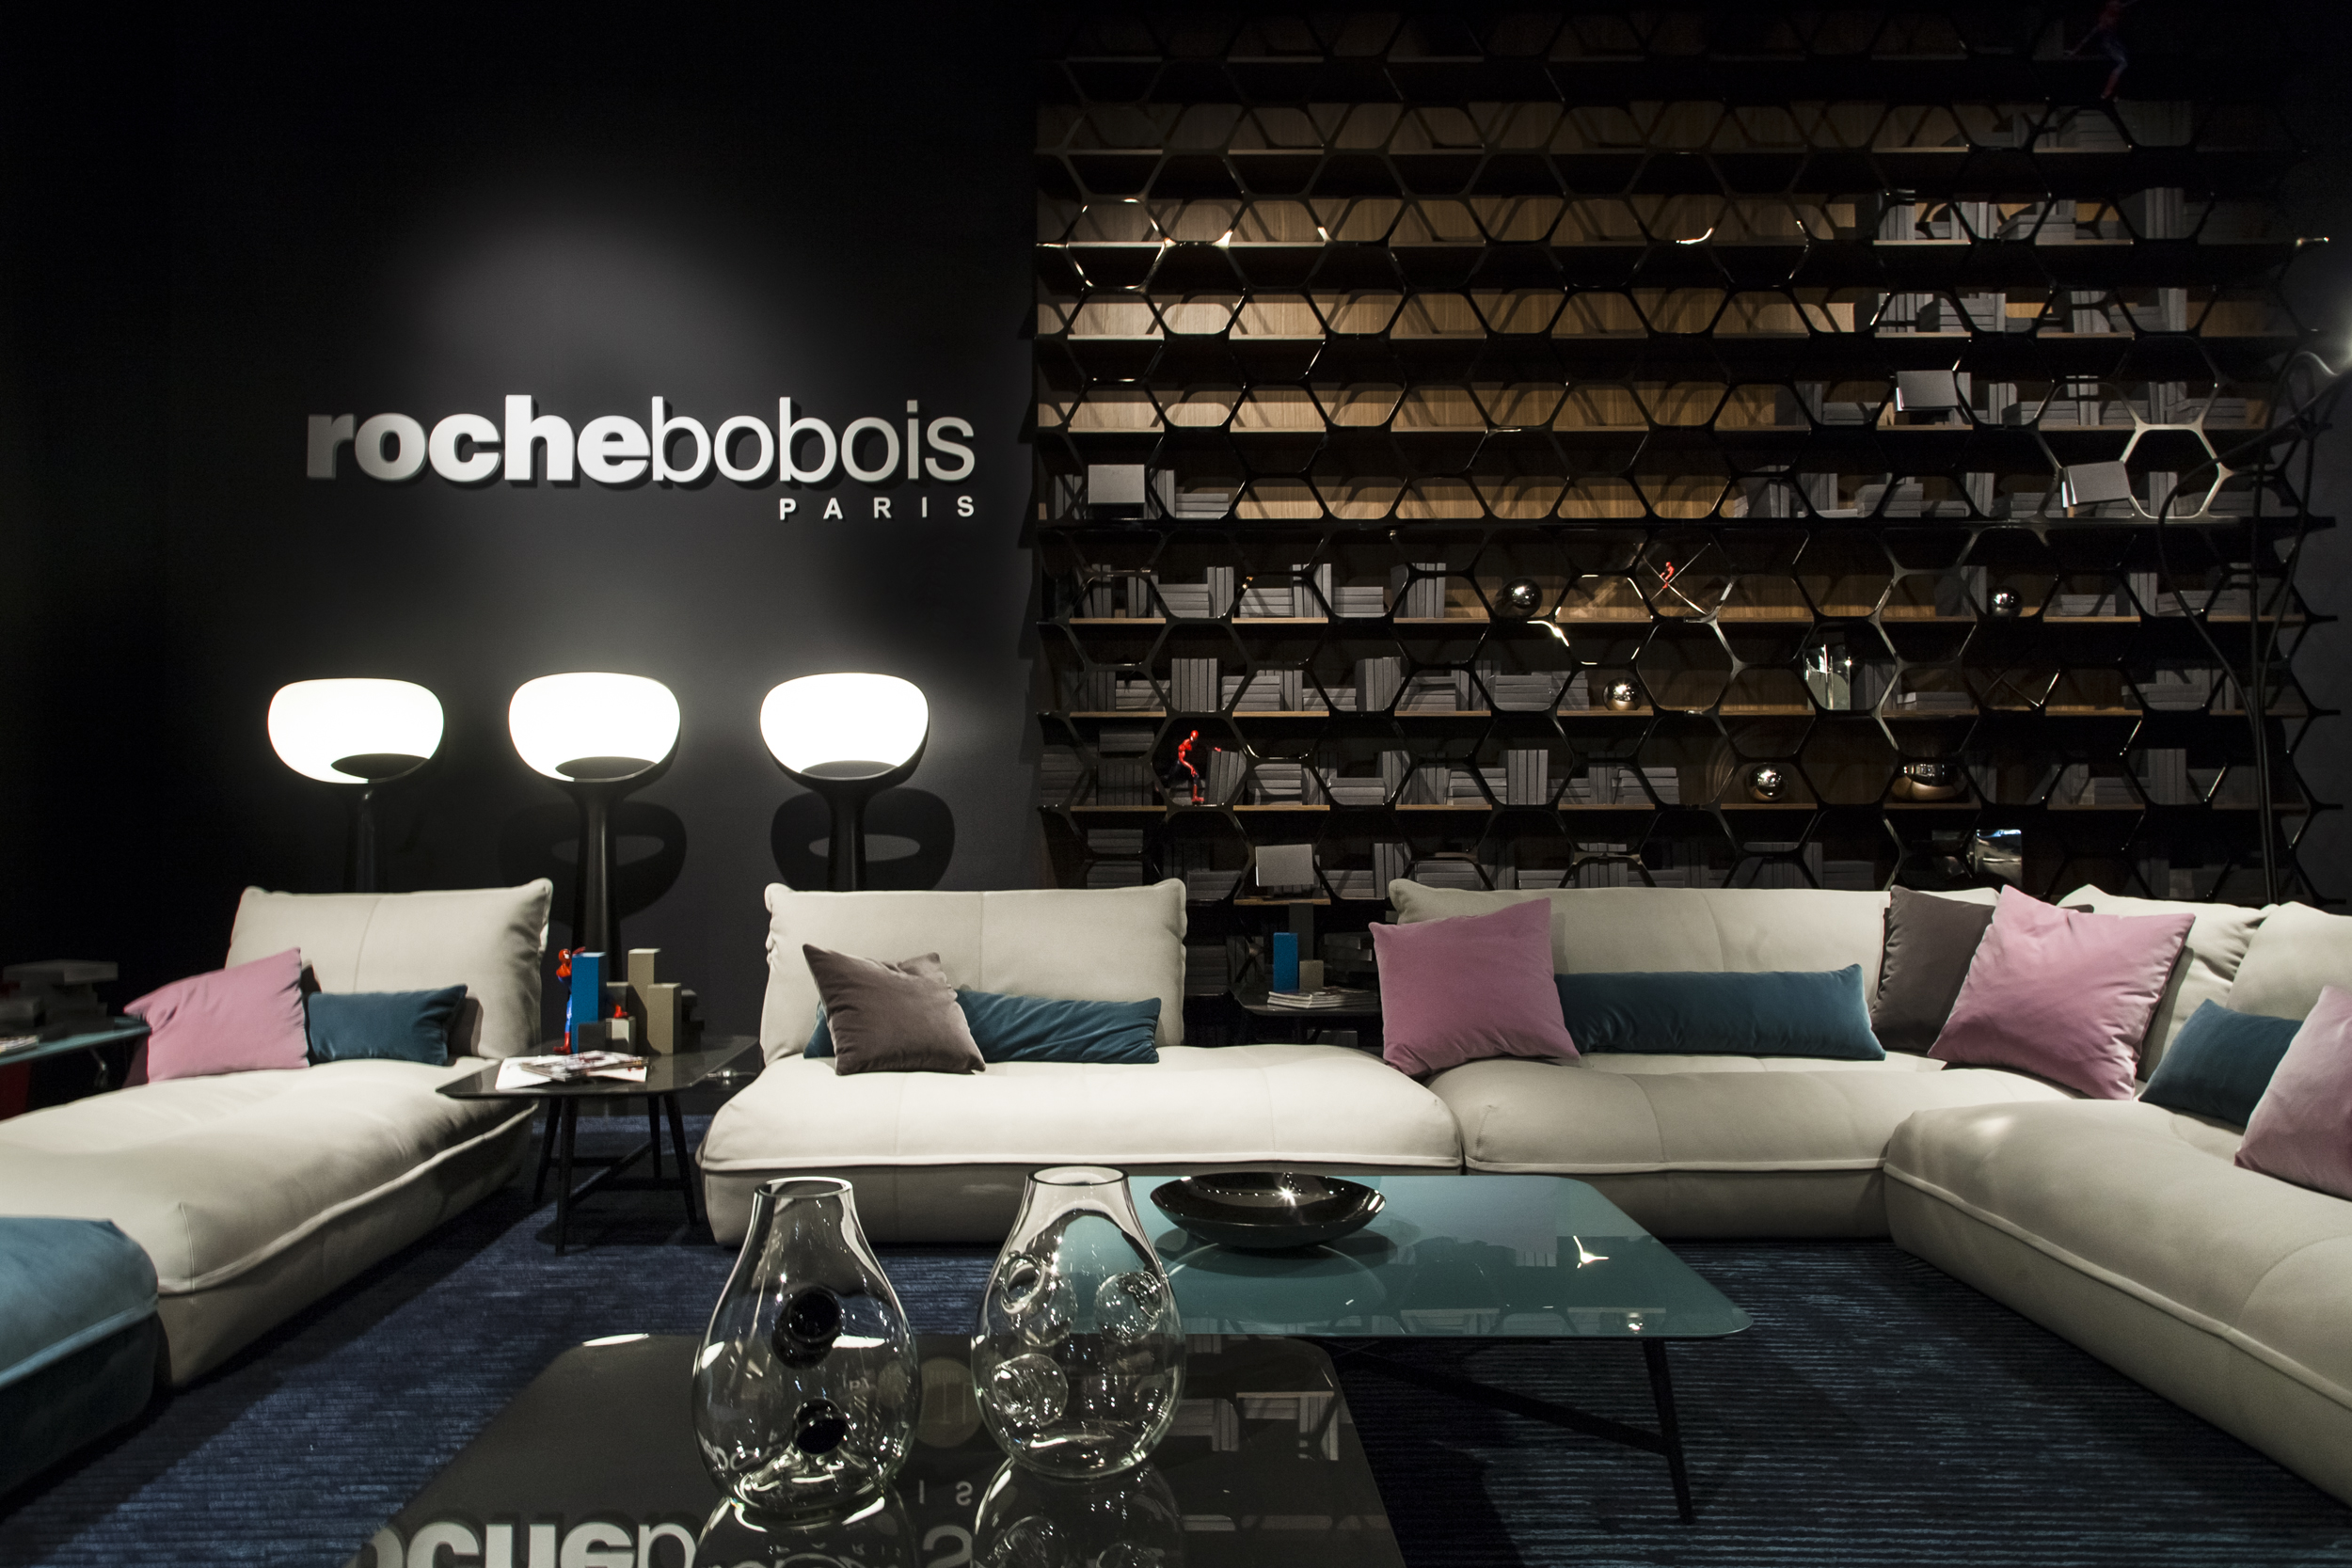 canap modulable en cuir tann e octet by roche bobois design maurizio manzoni roberto tapinassi. Black Bedroom Furniture Sets. Home Design Ideas